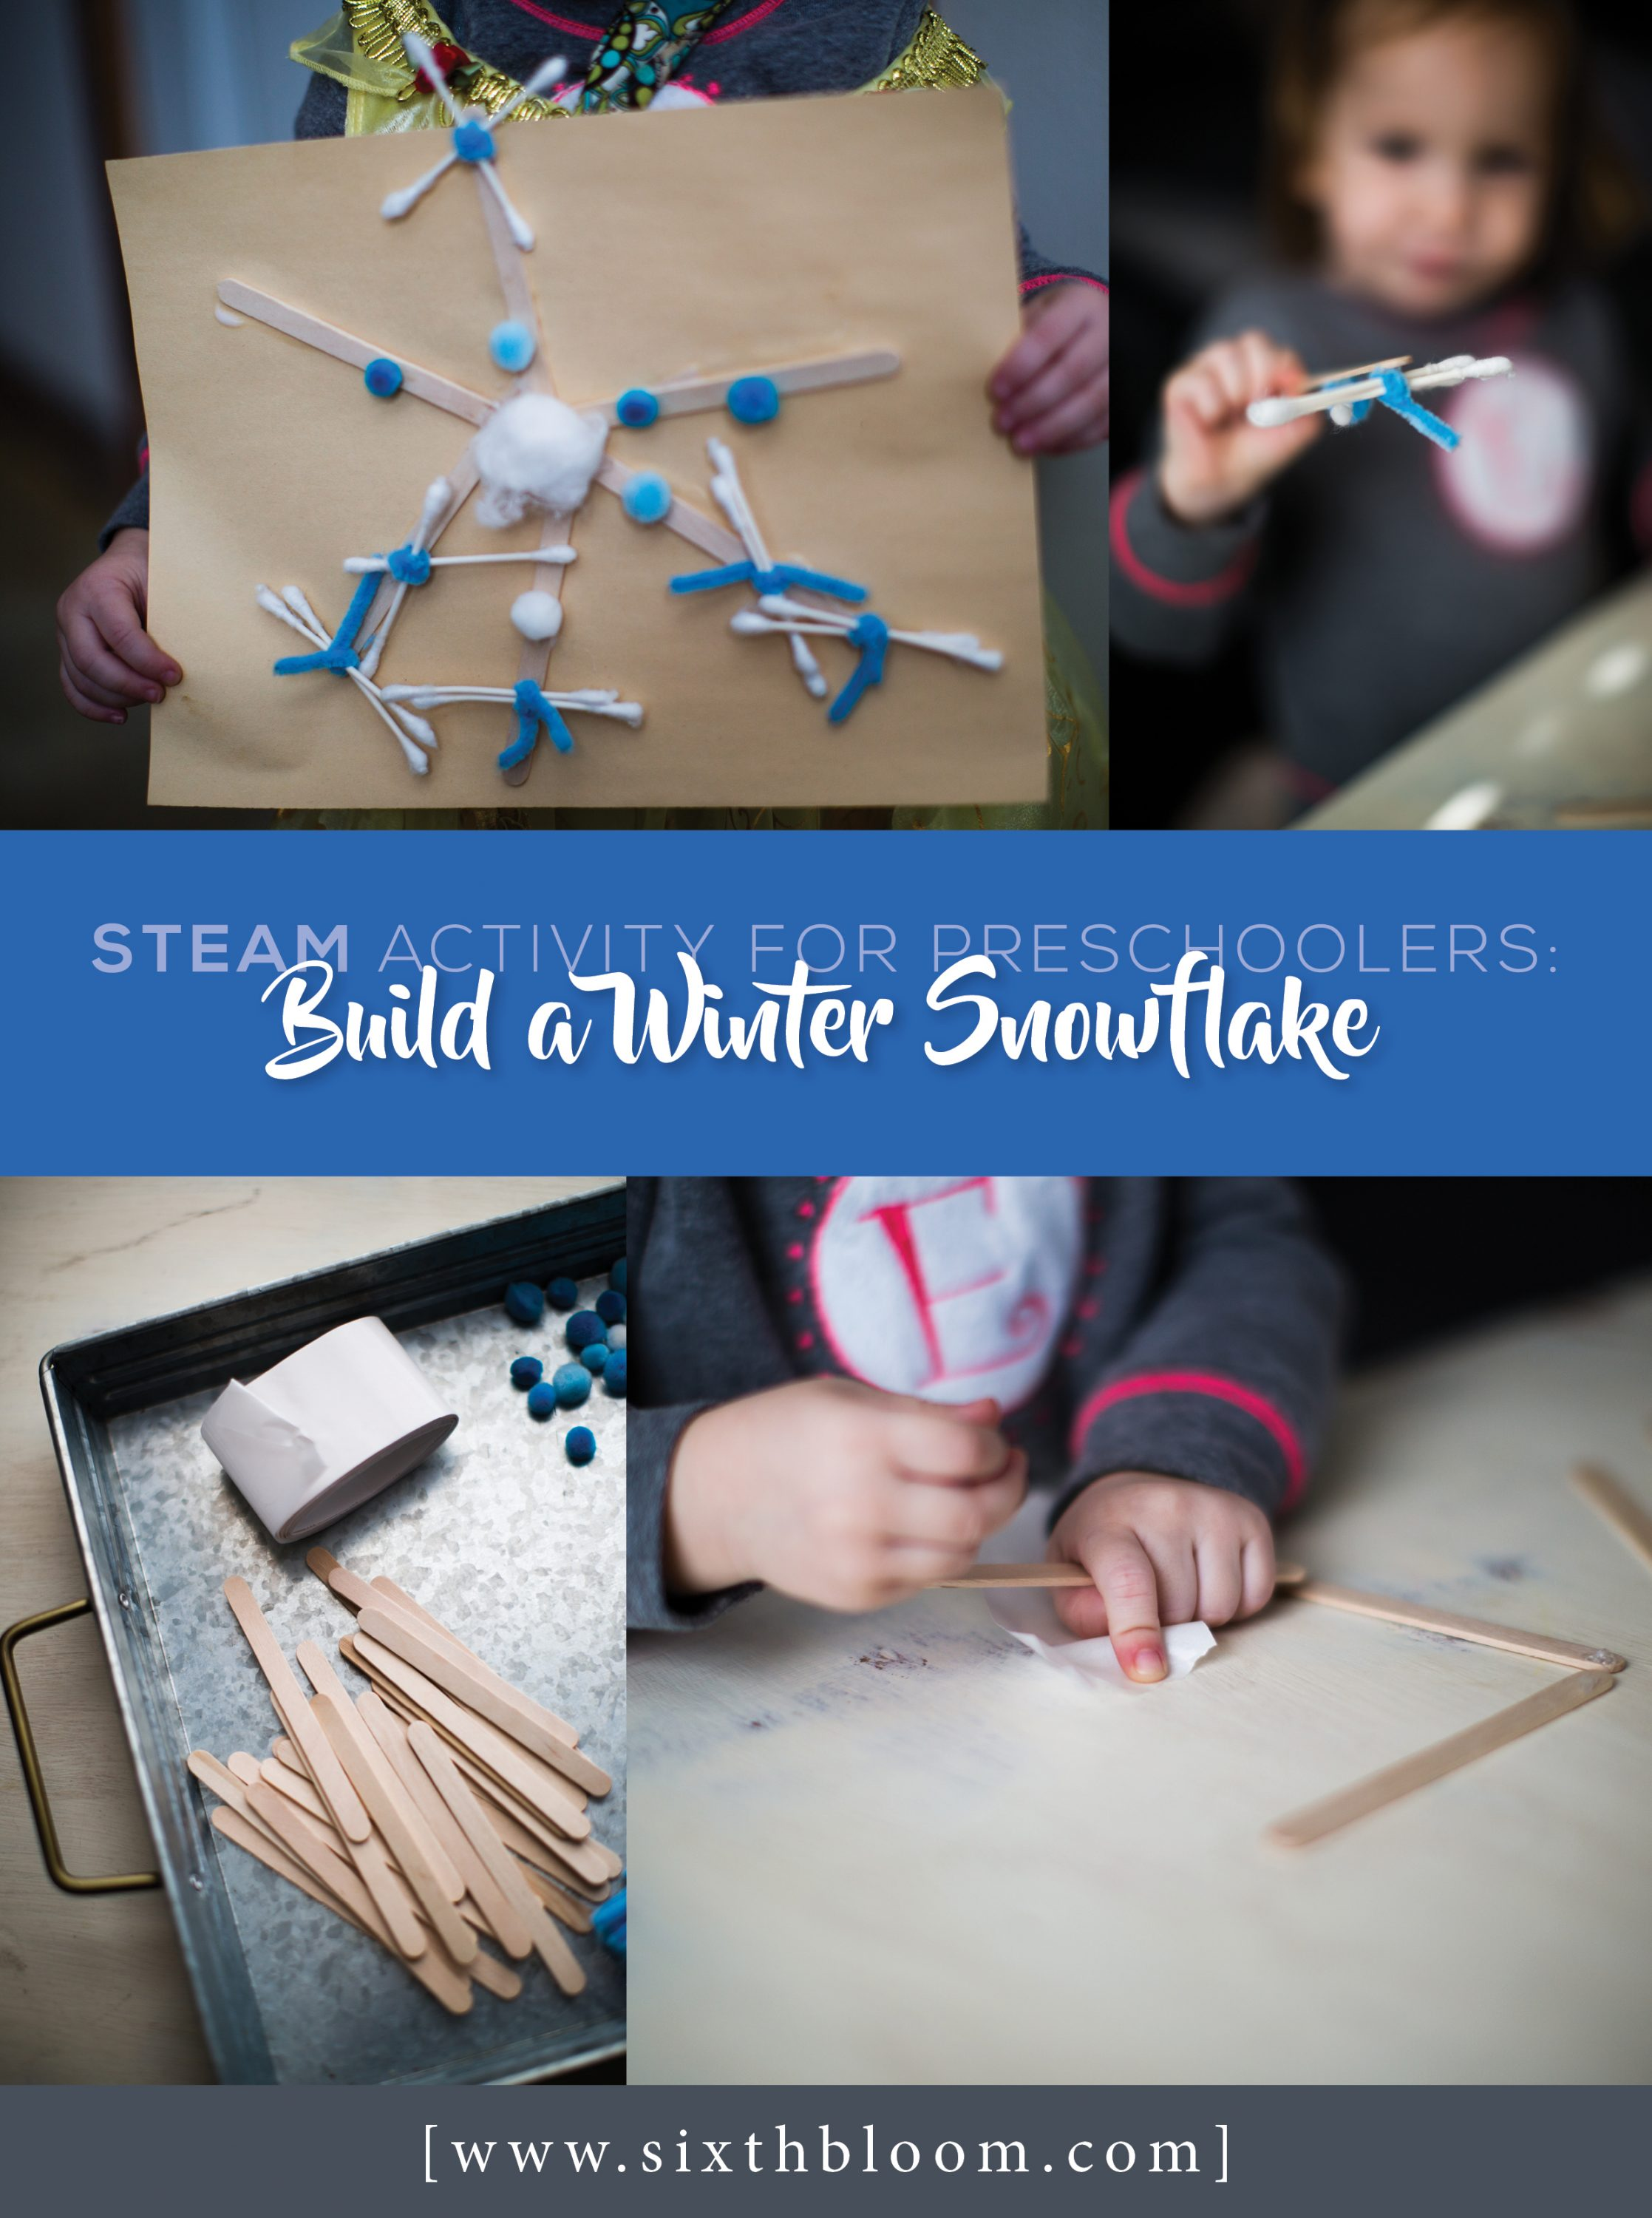 STEAM Preschool Activity: Building a Snowflake